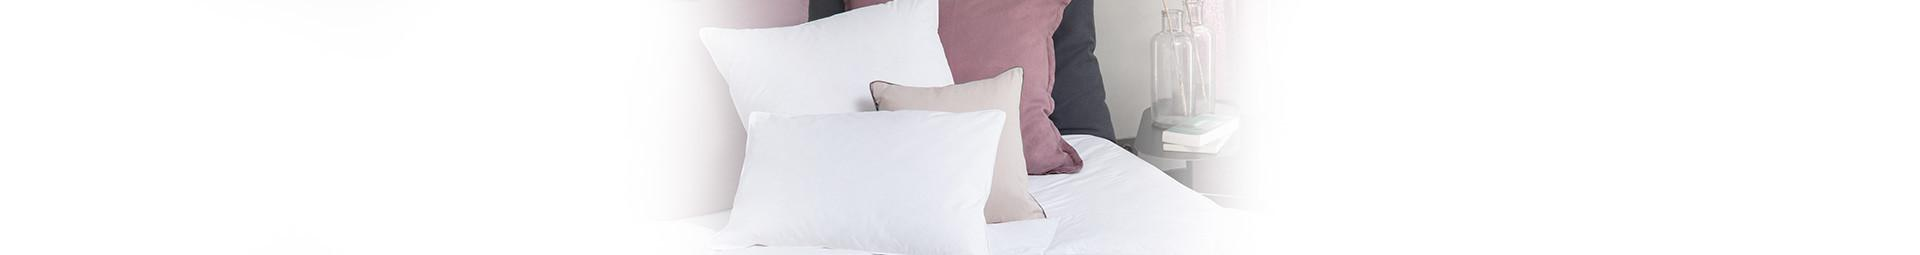 Premium Super Soft Pillows, Ultra Soft French Down Pillows - Pyrenex